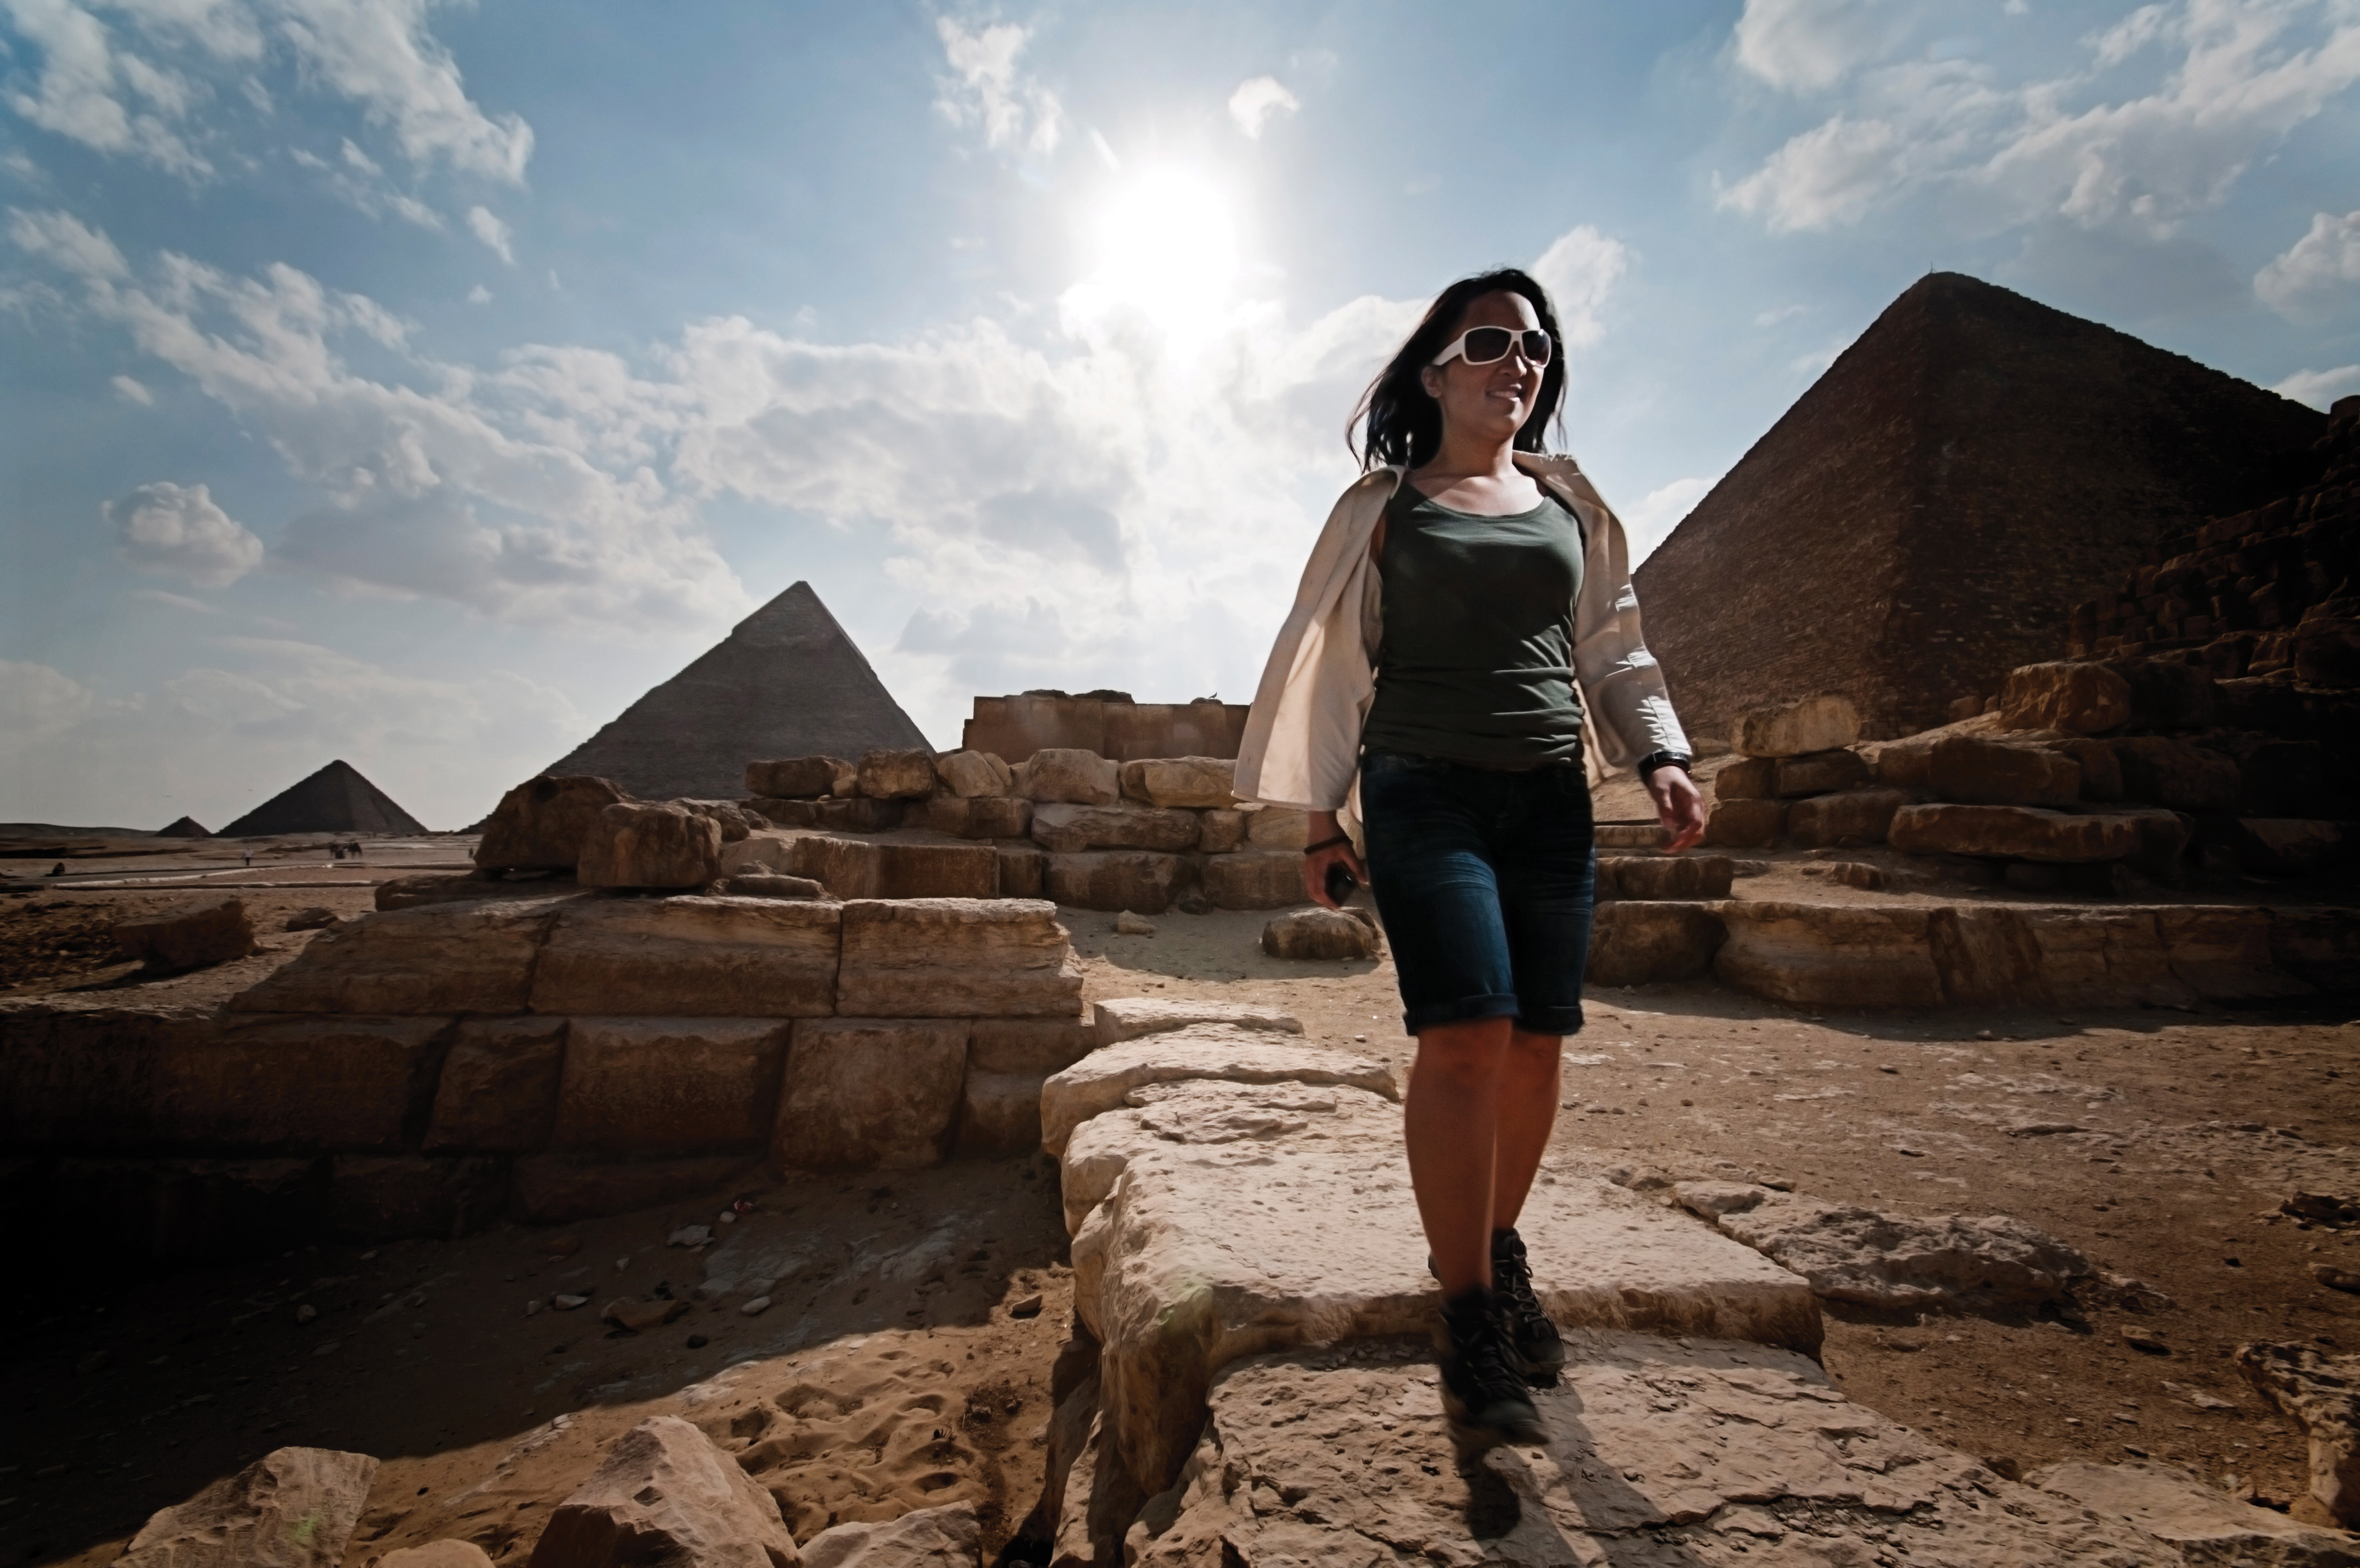 G Adventures Shares Top 10 Destinations for the American Adventure Traveler in the New Year